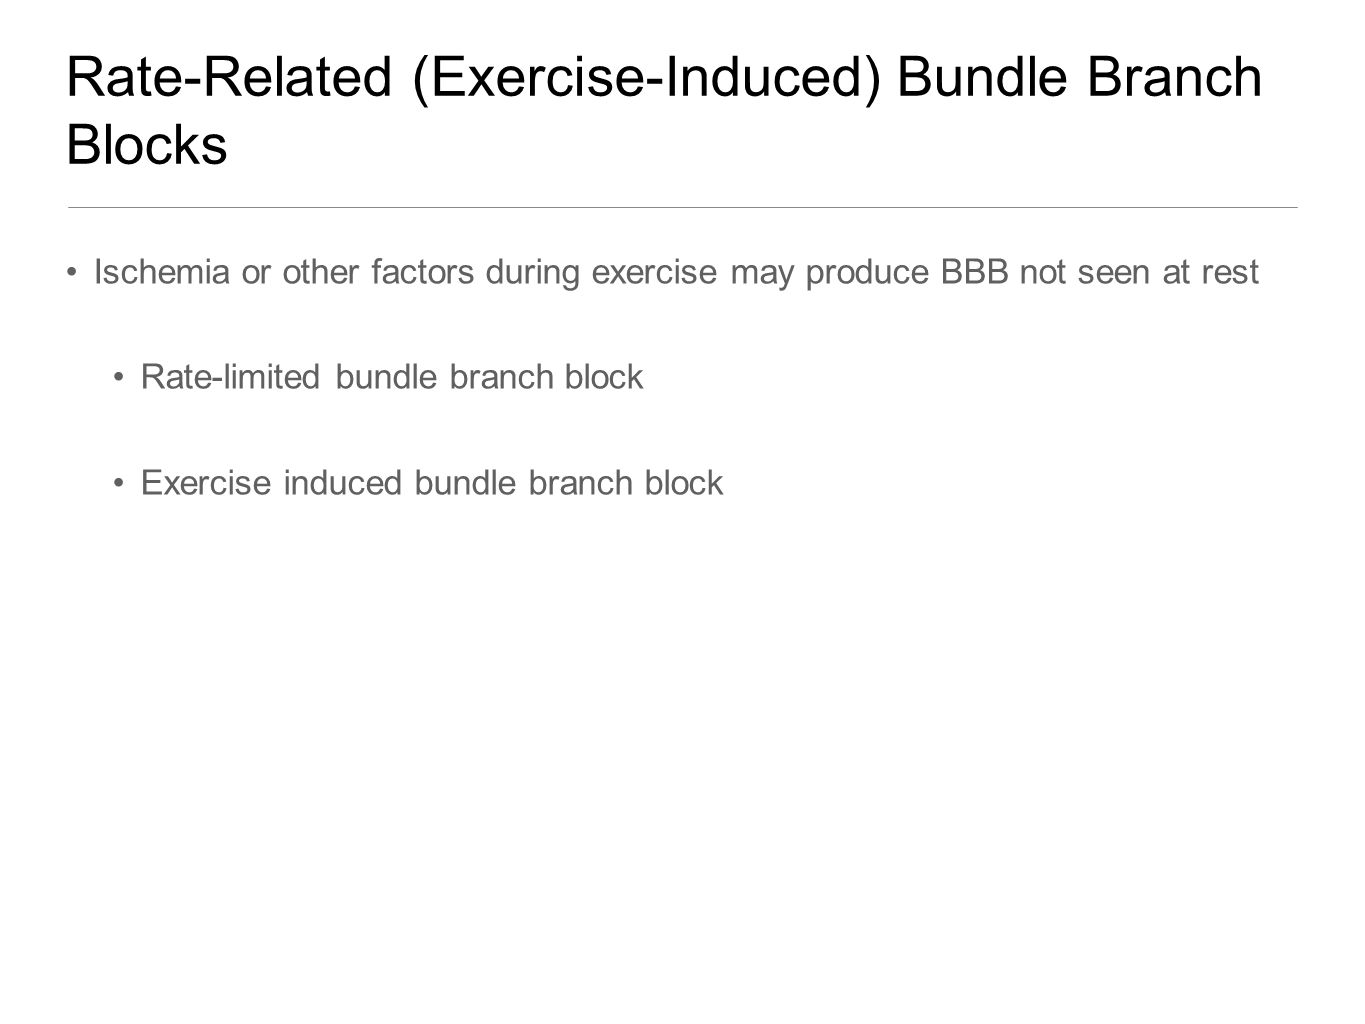 Rate-Related (Exercise-Induced) Bundle Branch Blocks